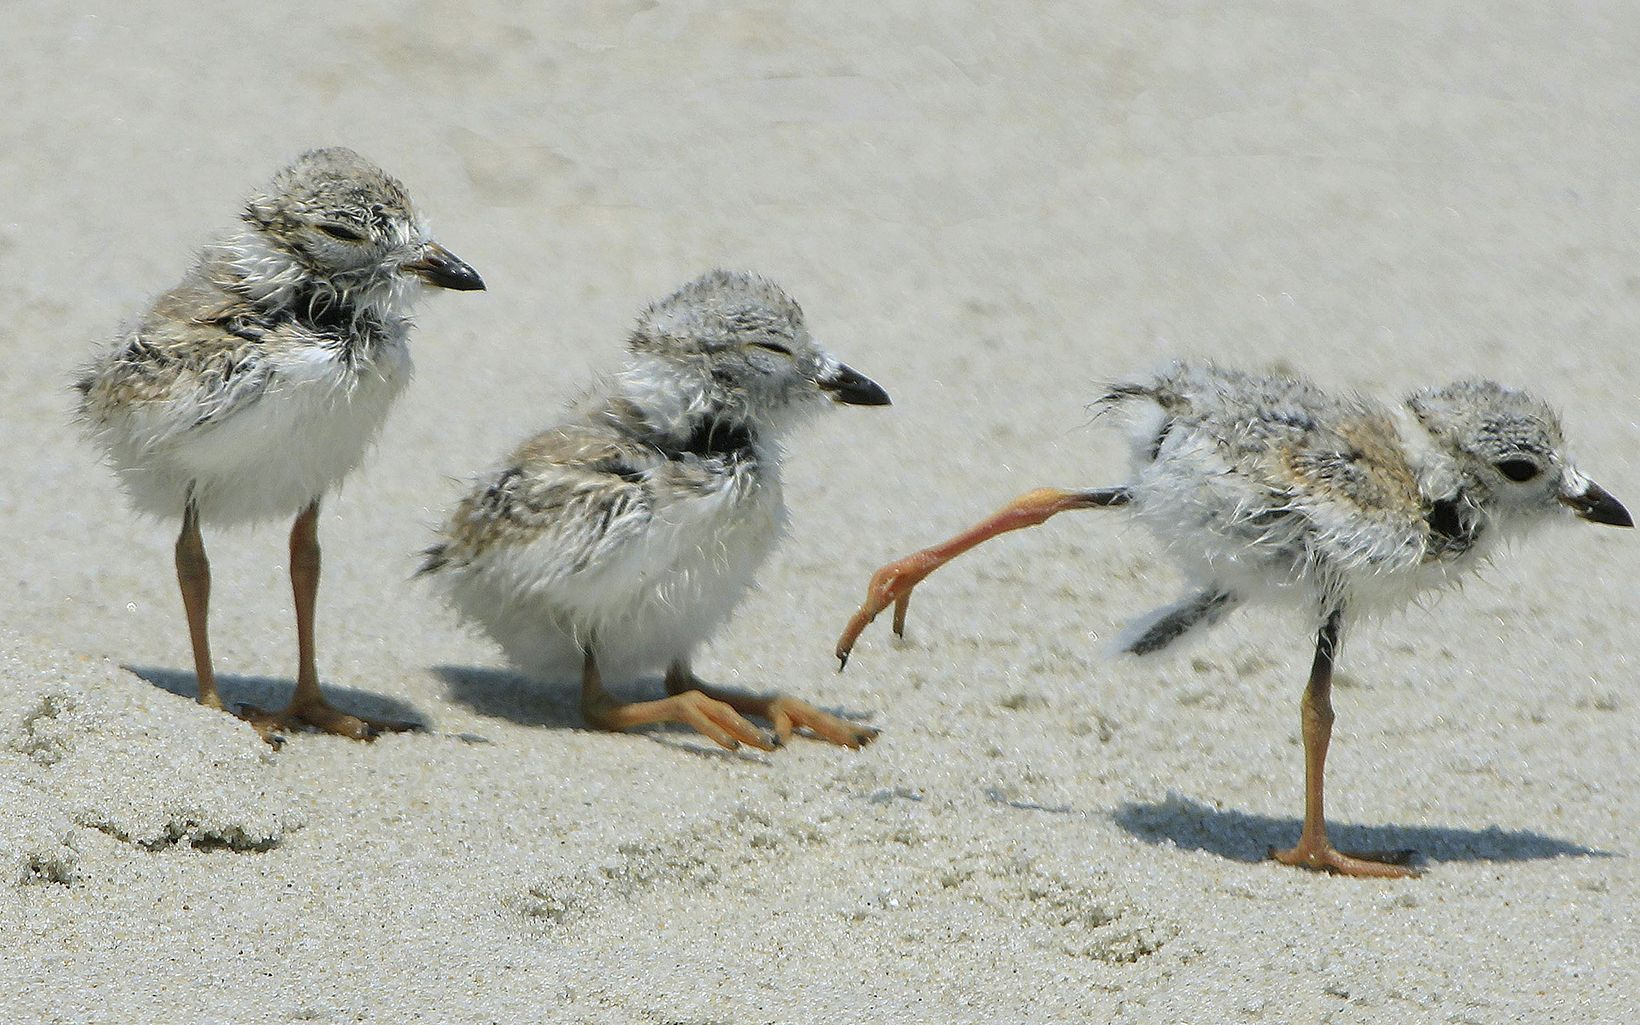 Three piping plover chicks in the sand.